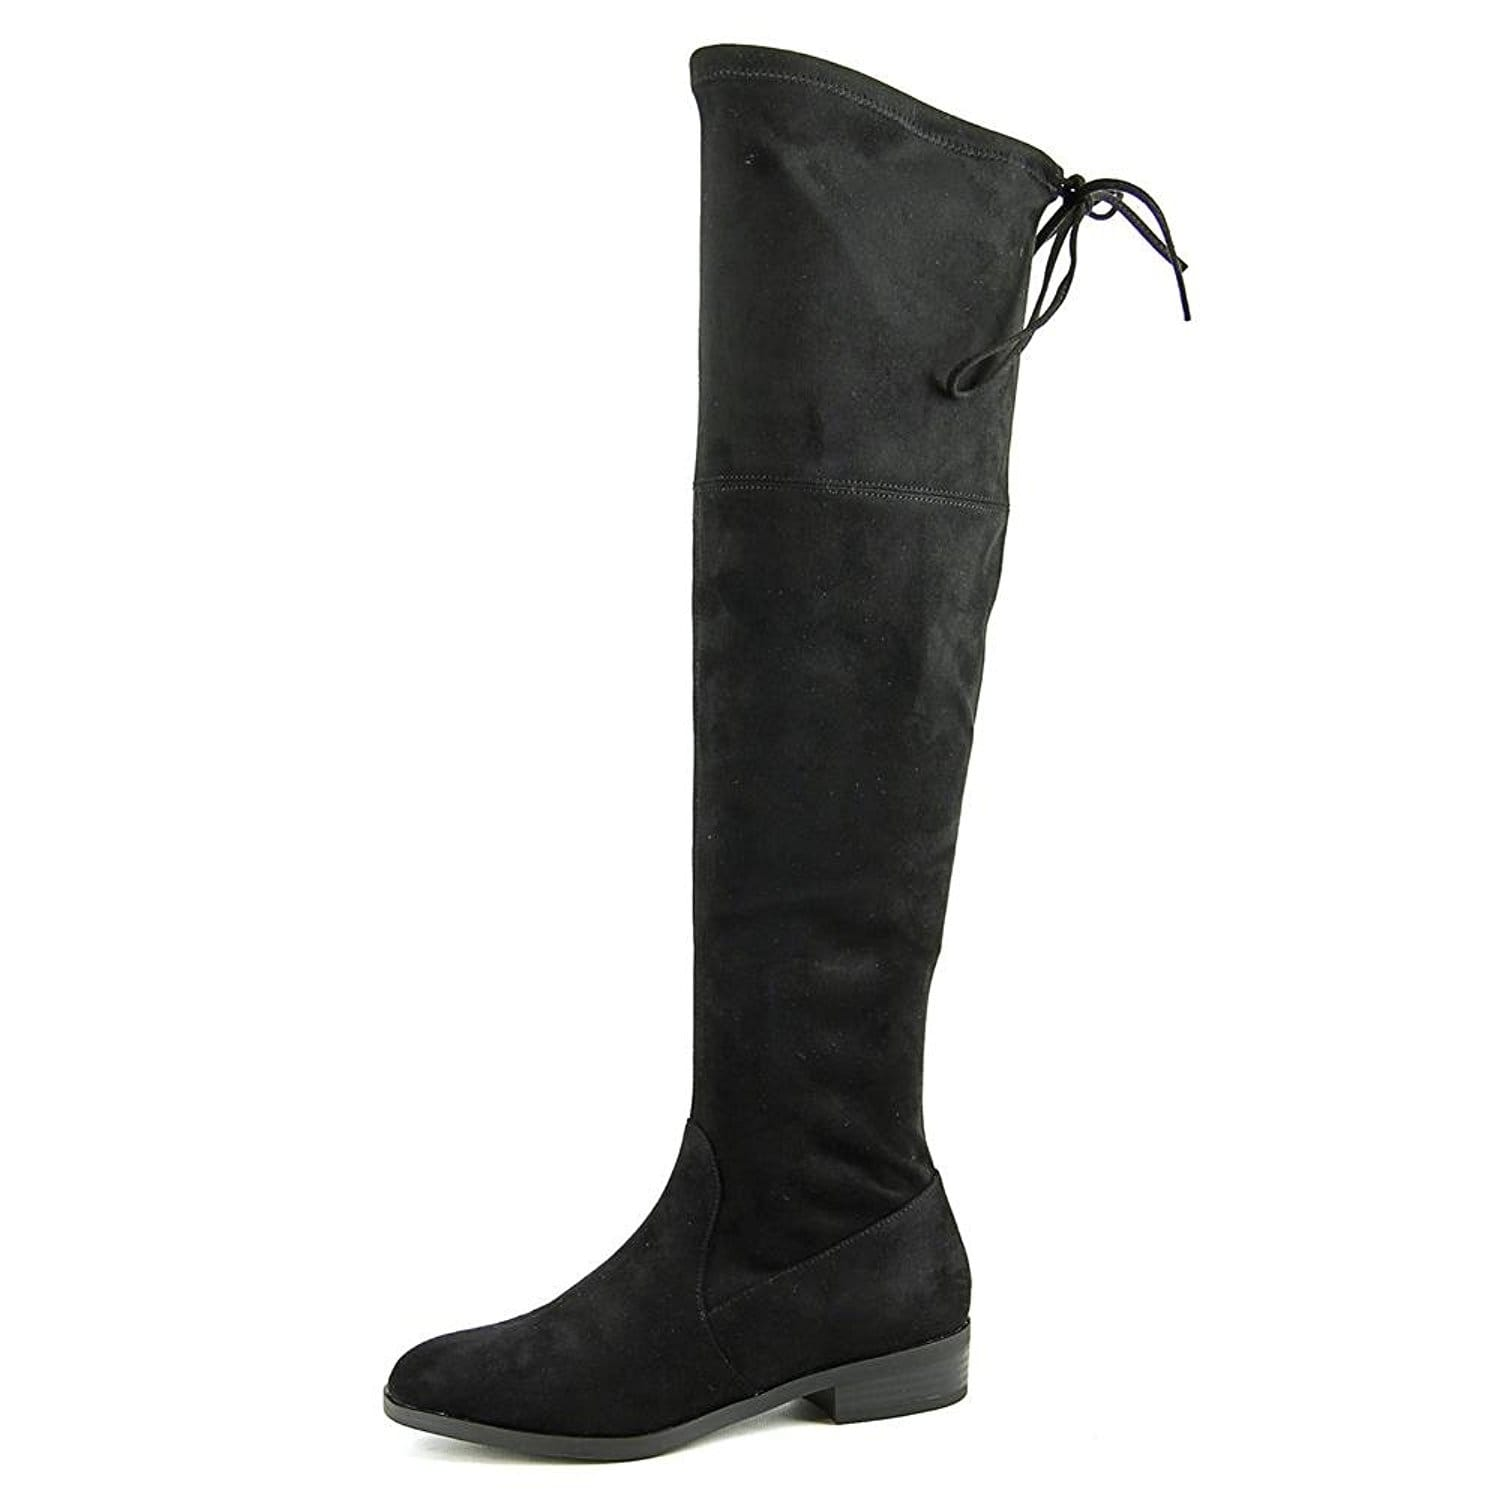 ffe987f754d Shop INC International Concepts Womens Imannie Closed Toe Over Knee Fashion  Boots - Free Shipping On Orders Over  45 - Overstock - 22338240